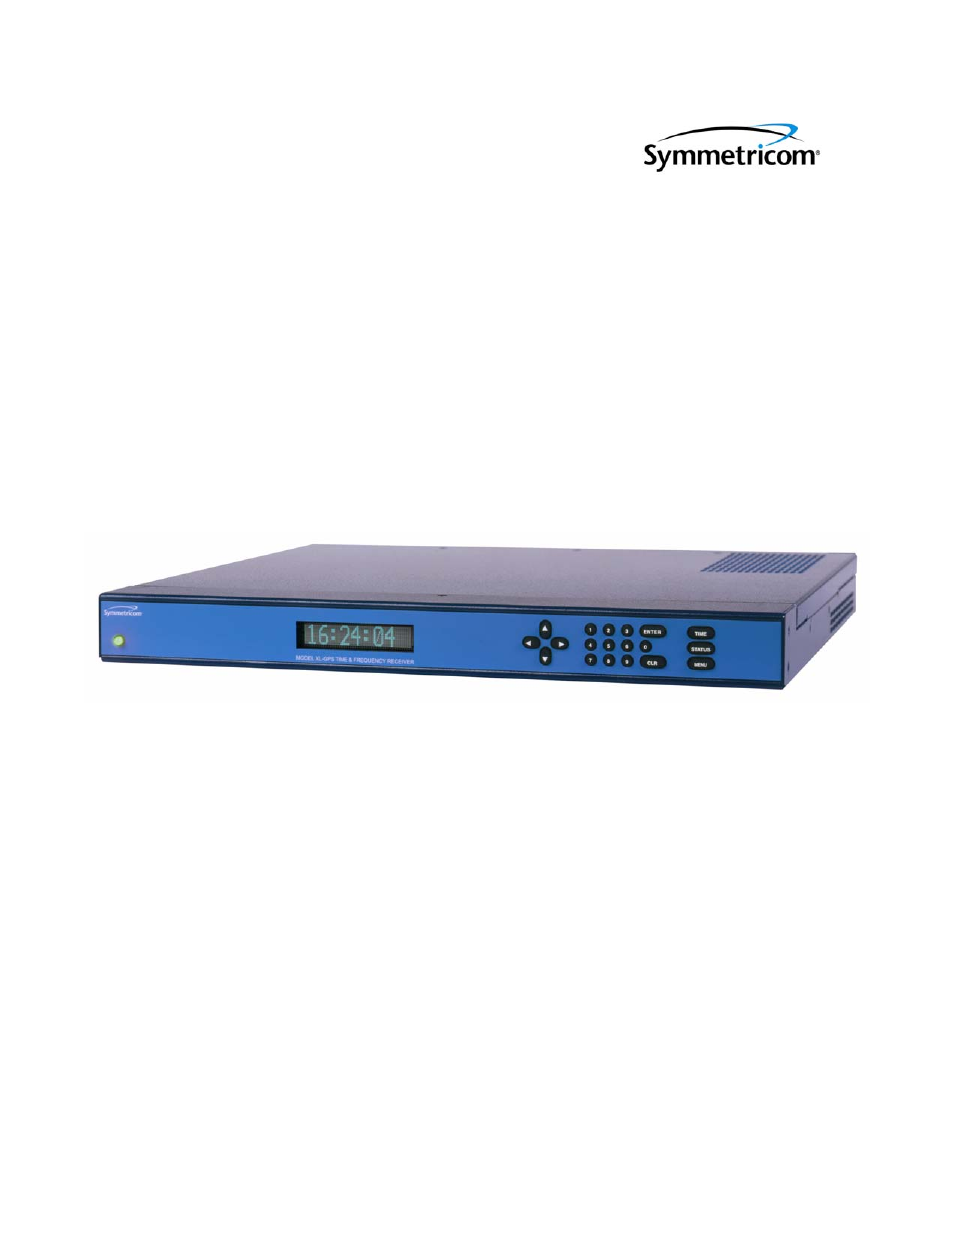 symmetricom xl gps user manual 162 pages rh manualsdir com symmetricom s250 user manual symmetricom s250i user manual